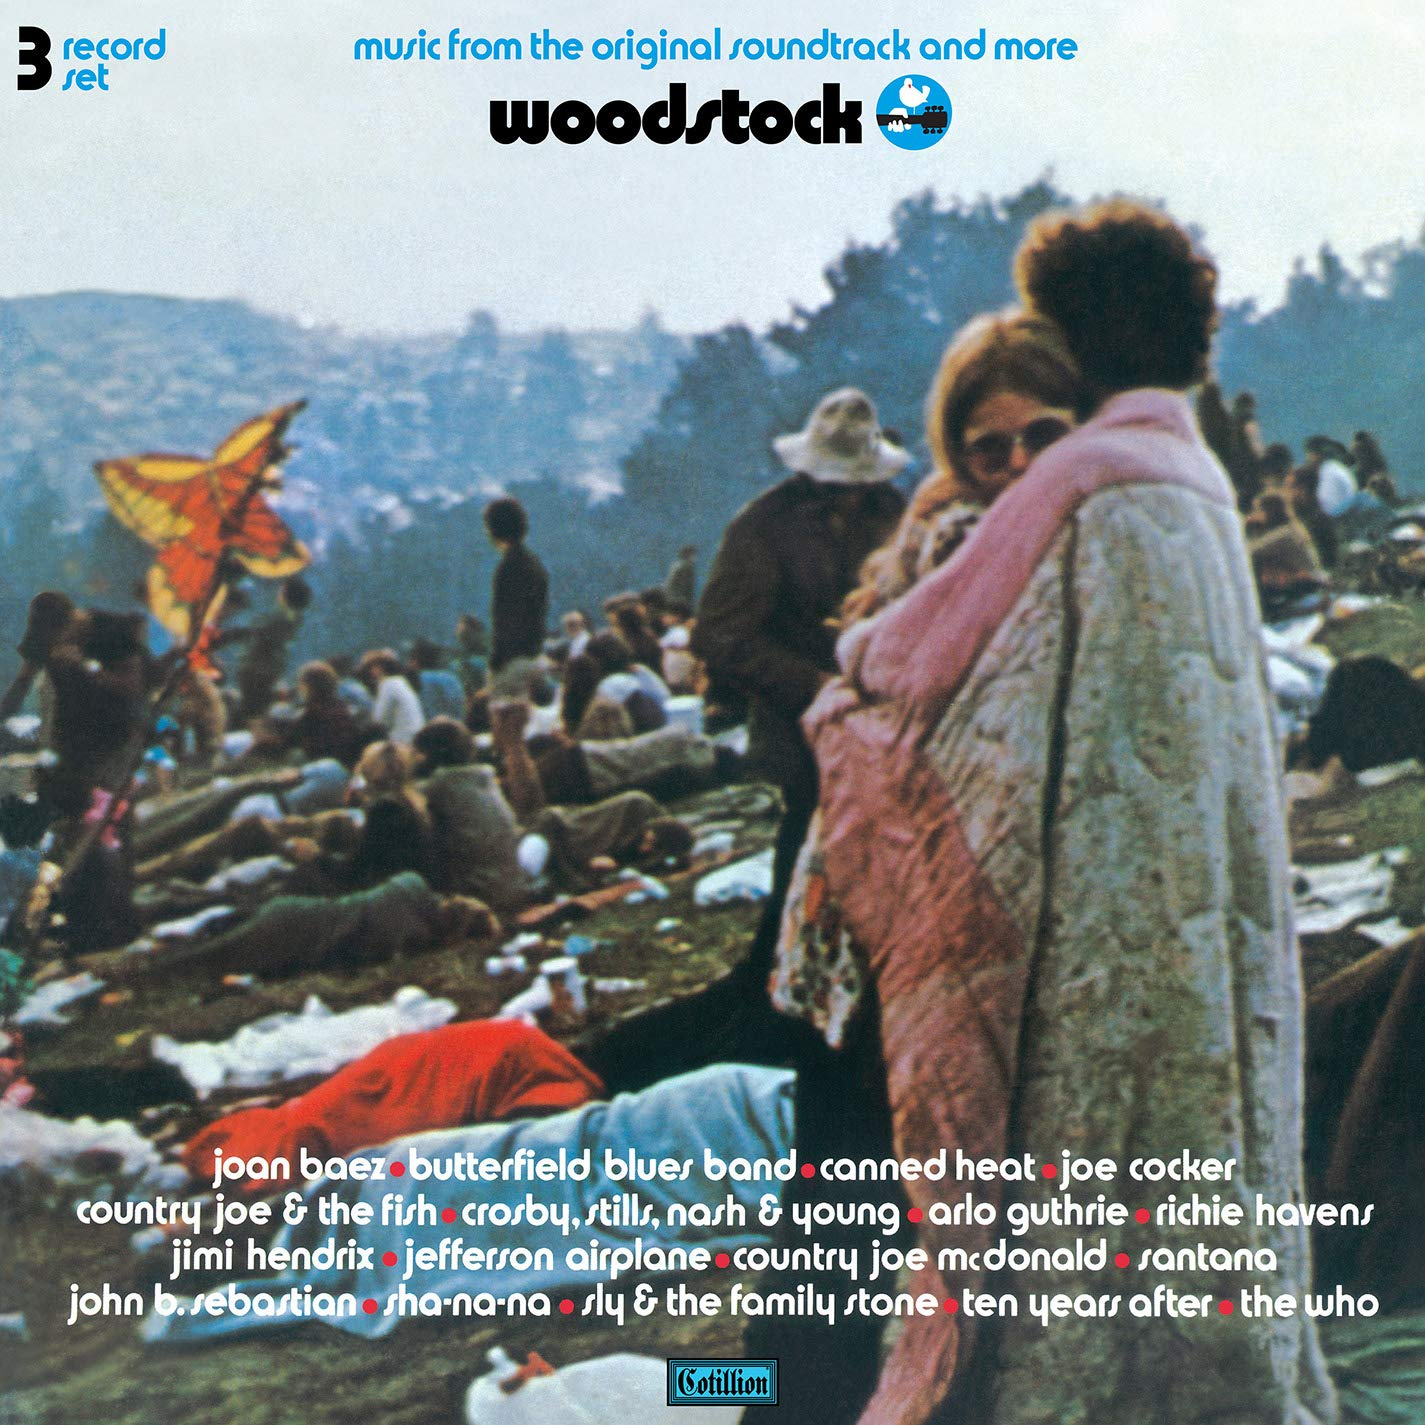 Woodstock - Music From The Original Soundtrack And More (3LP Colored Viny) by Atlantic Catalog Group